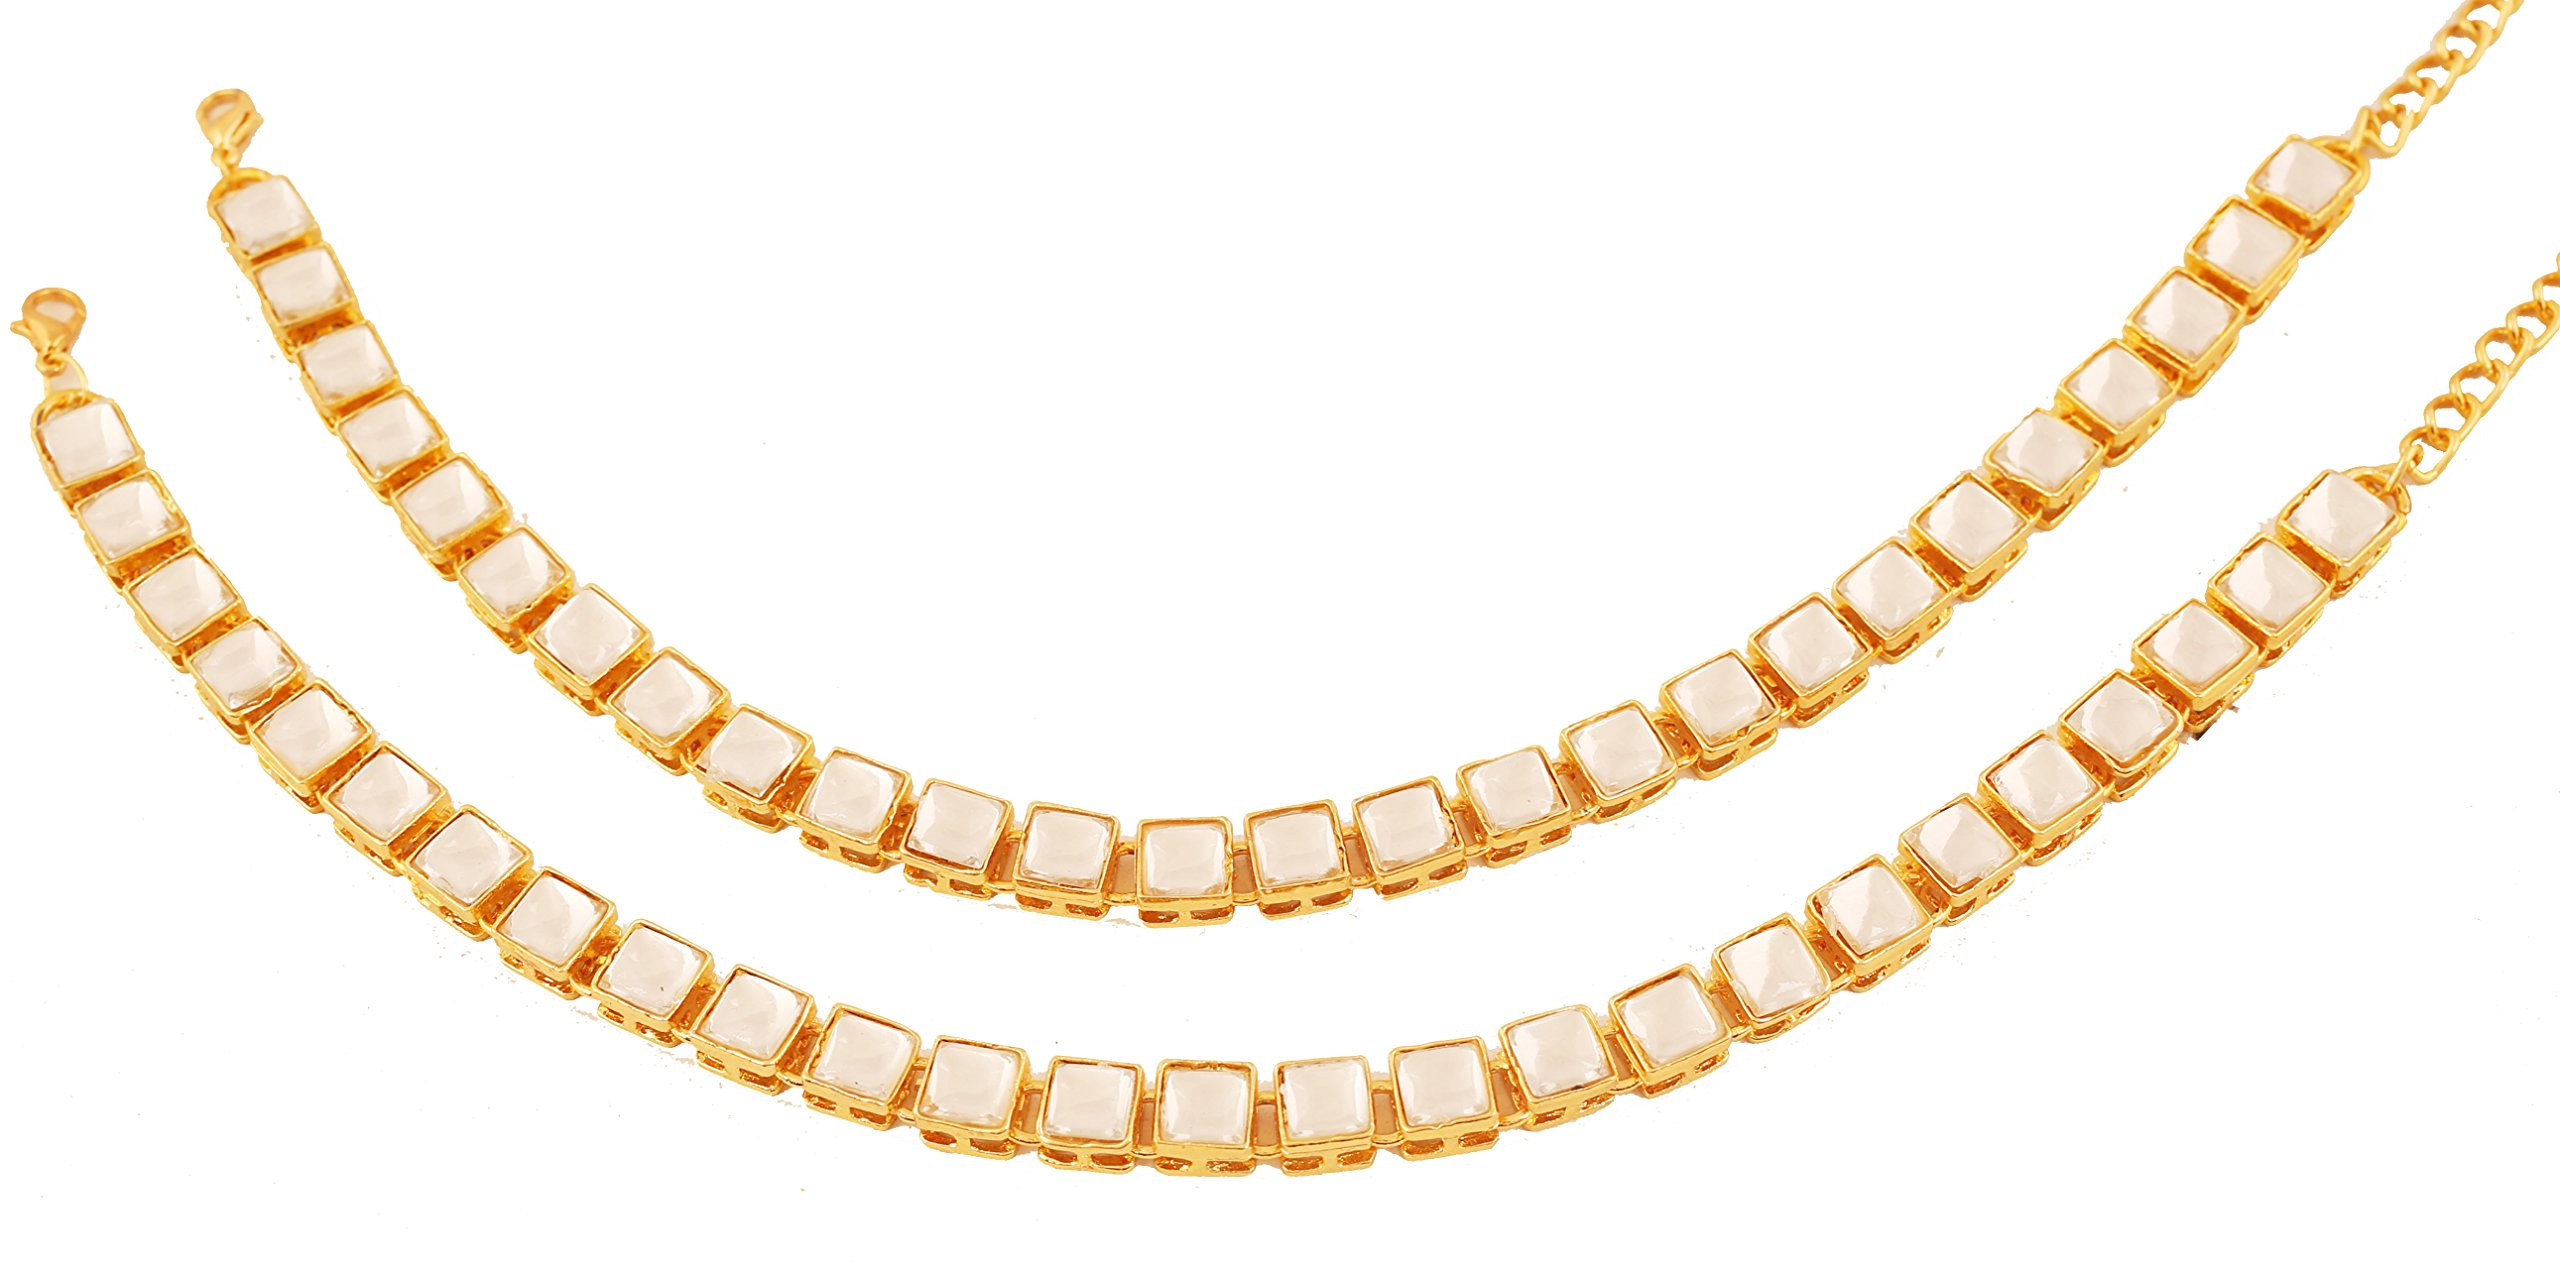 NEW! Touchstone Indian Bollywood Exclusive Mughal Era Inspired Stylish Traditional Kundan Polki Look Designer Jewelry Wedding Payal Paazeb'' Pair Of Anklets'' In Antique Gold Tone For Women.